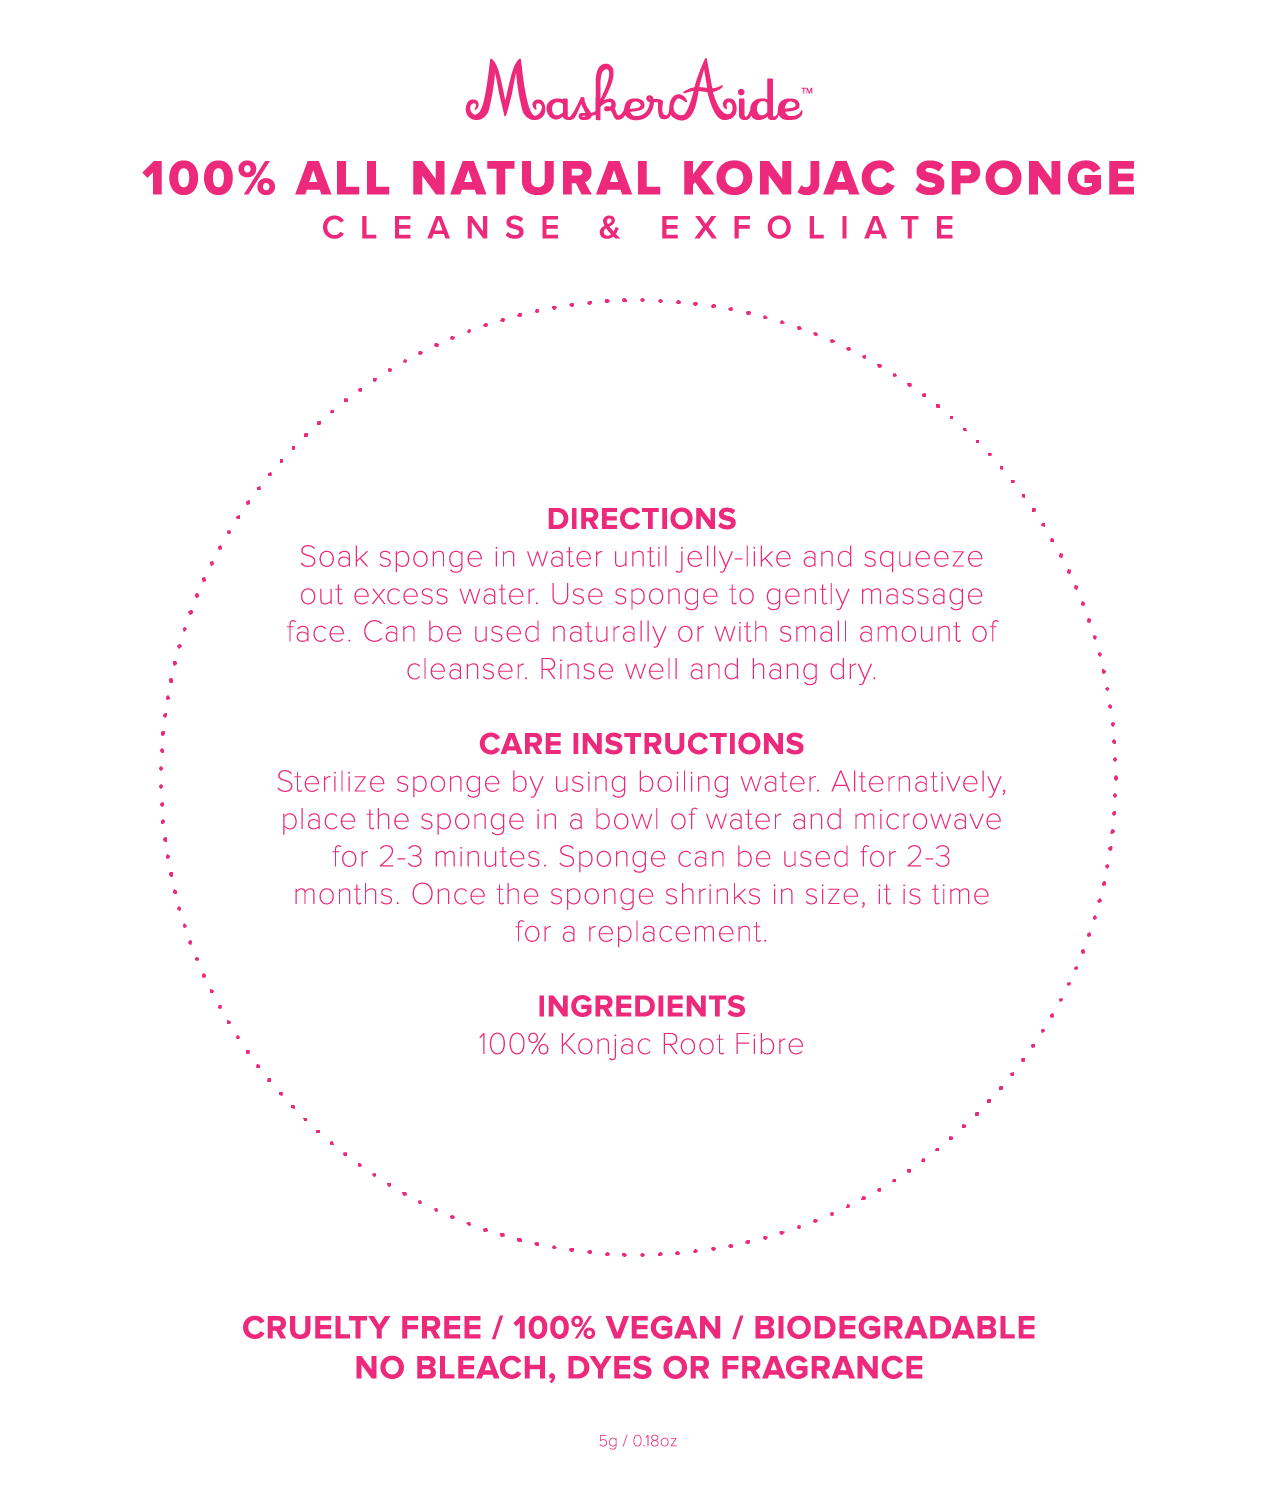 100% All Natural Konjac Sponge